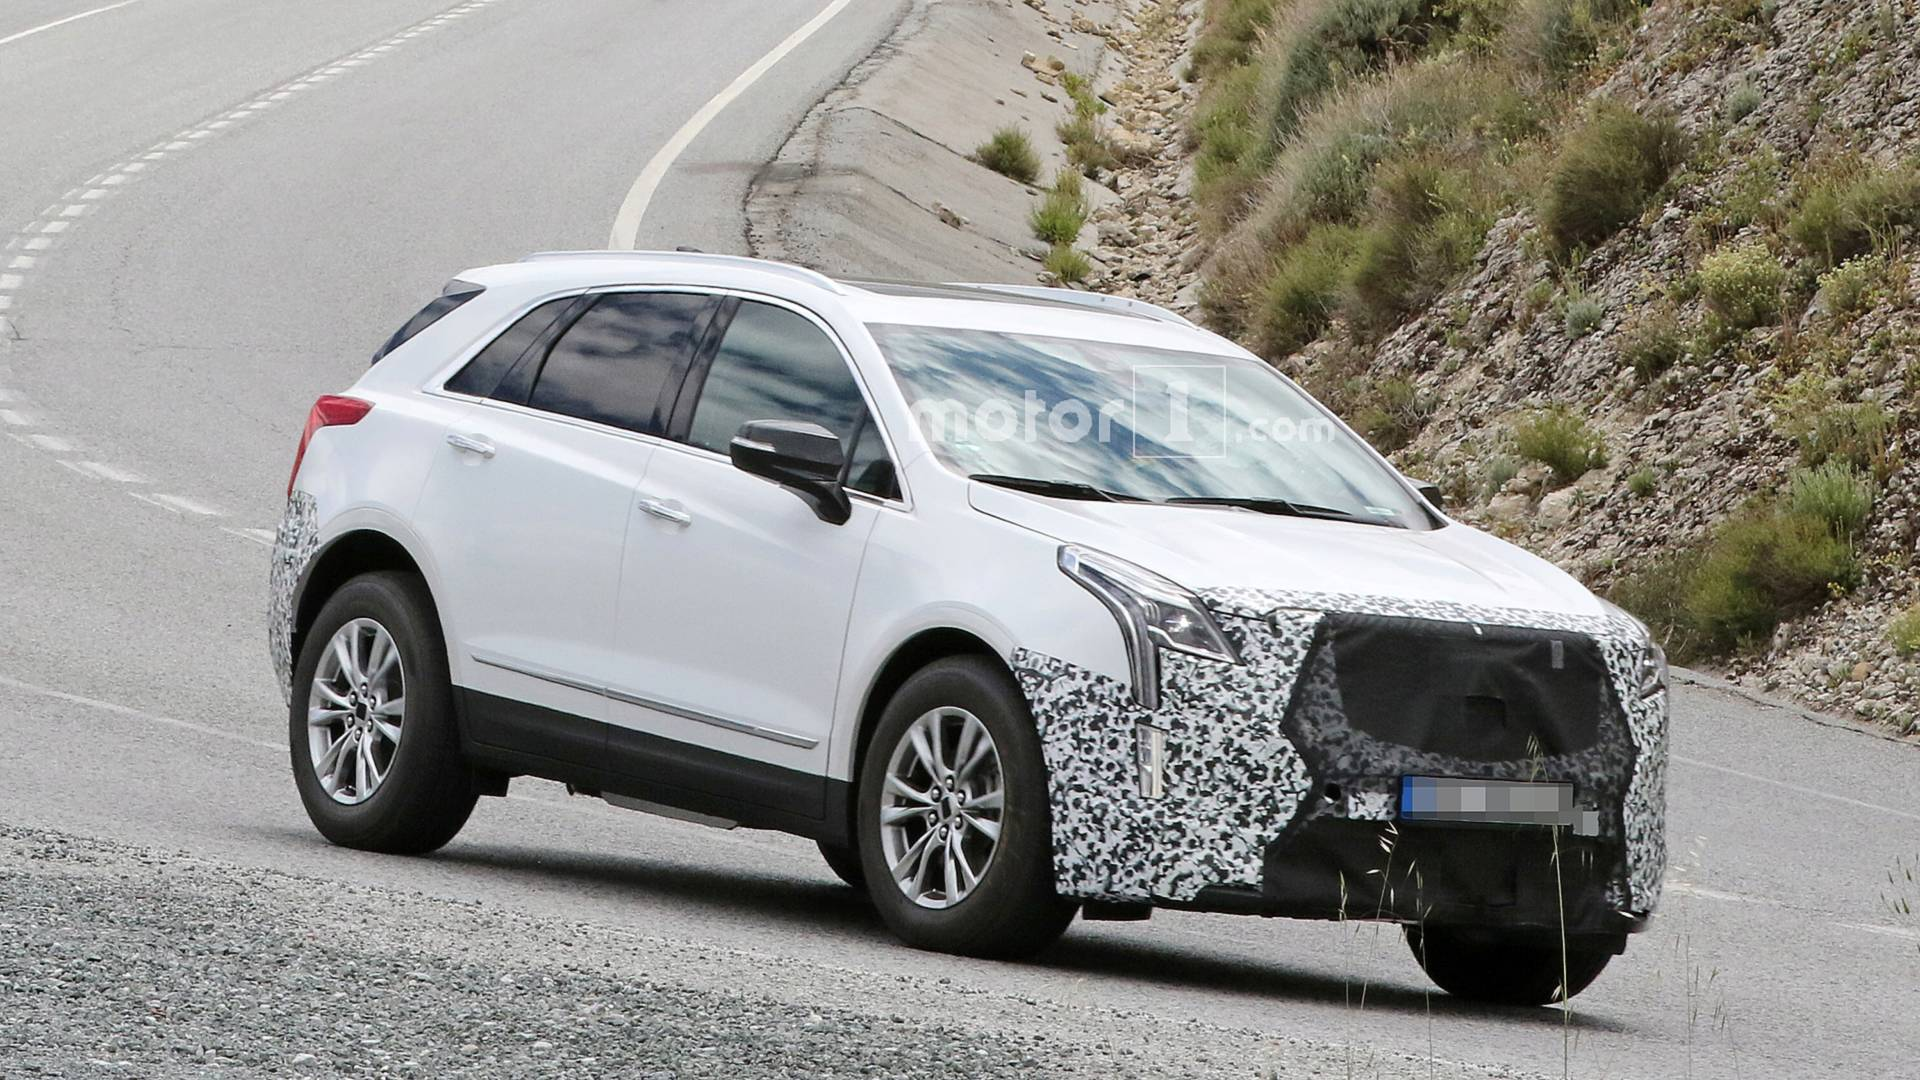 25 All New 2020 Spy Shots Cadillac Xt5 Style